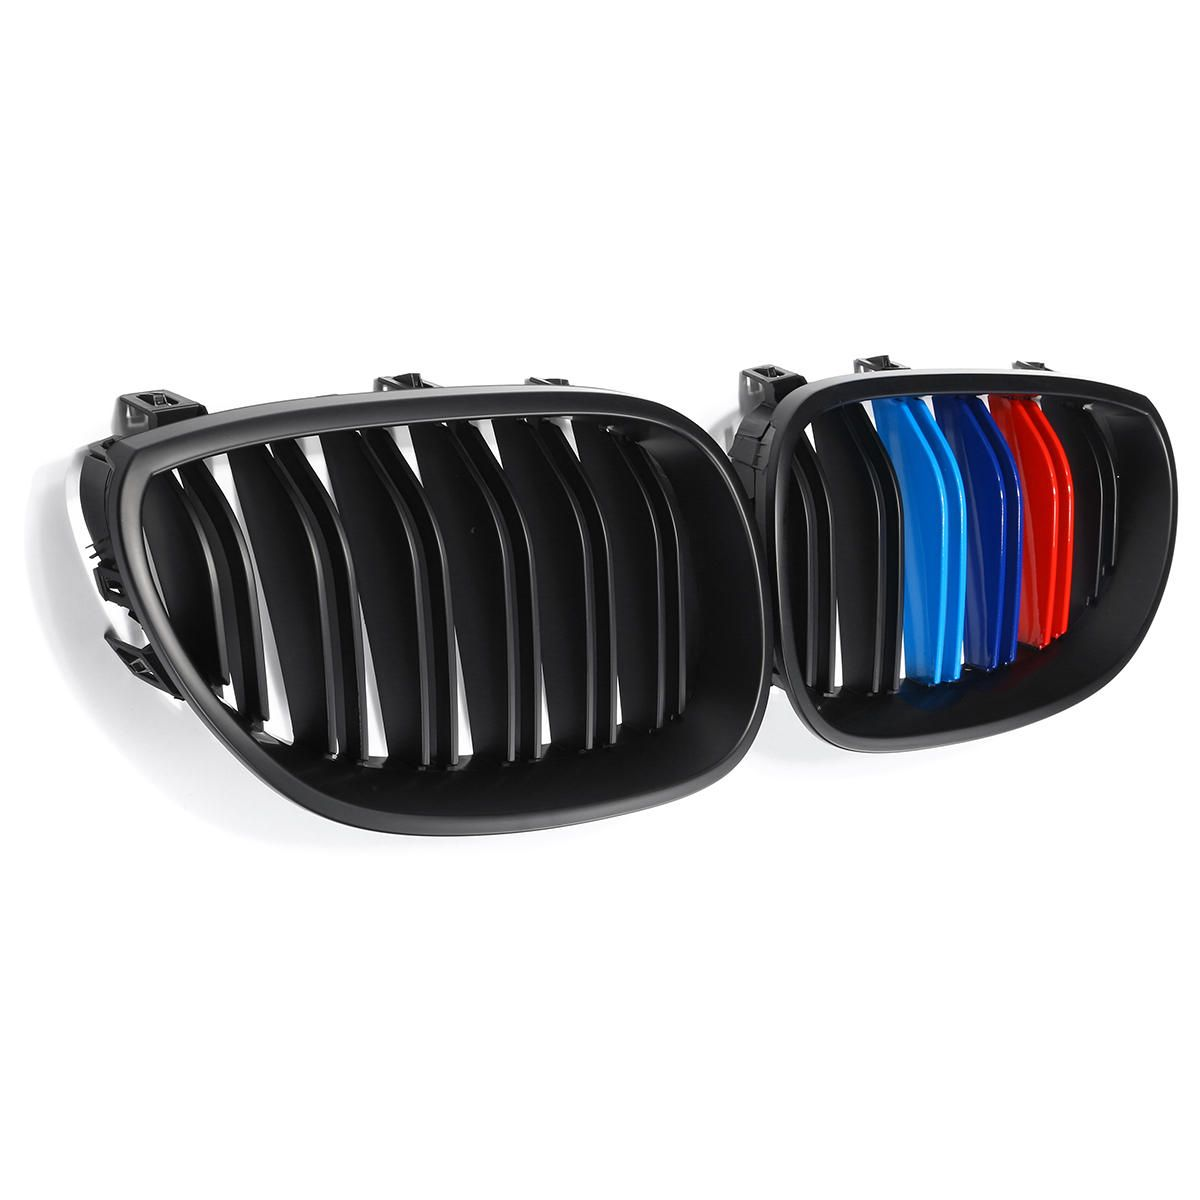 TAL US$48.46 Pair New Matte Black M-Color Front Kidney Grill Grille For BMW E60 2003-2010